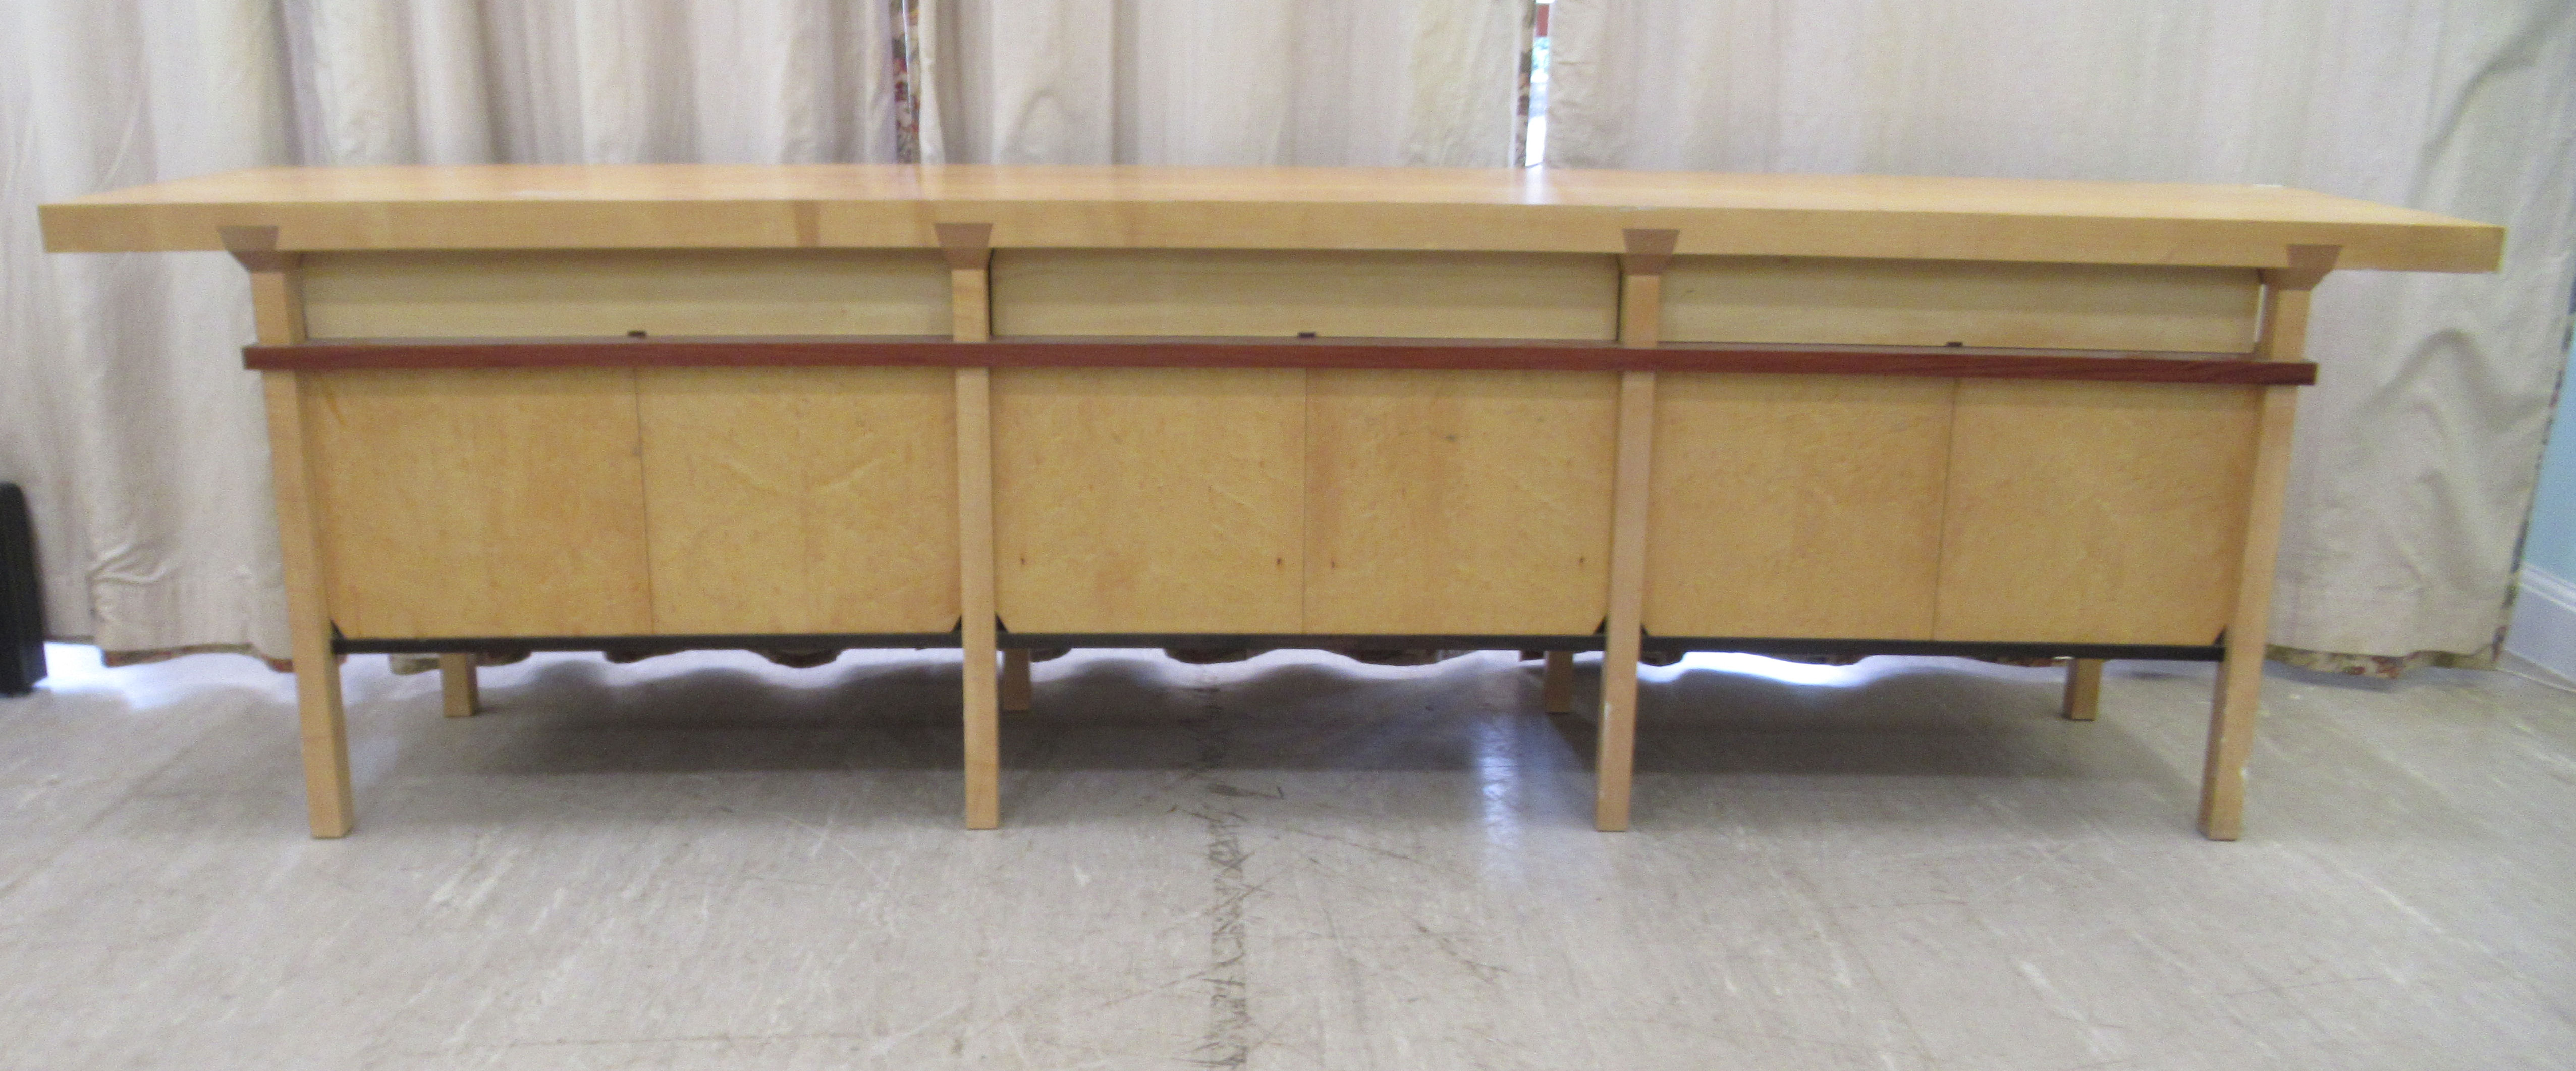 A 1960sJohn Makepeace OBE sideboard, constructed in sycamore, Andaman padauk and holly, - Image 12 of 12